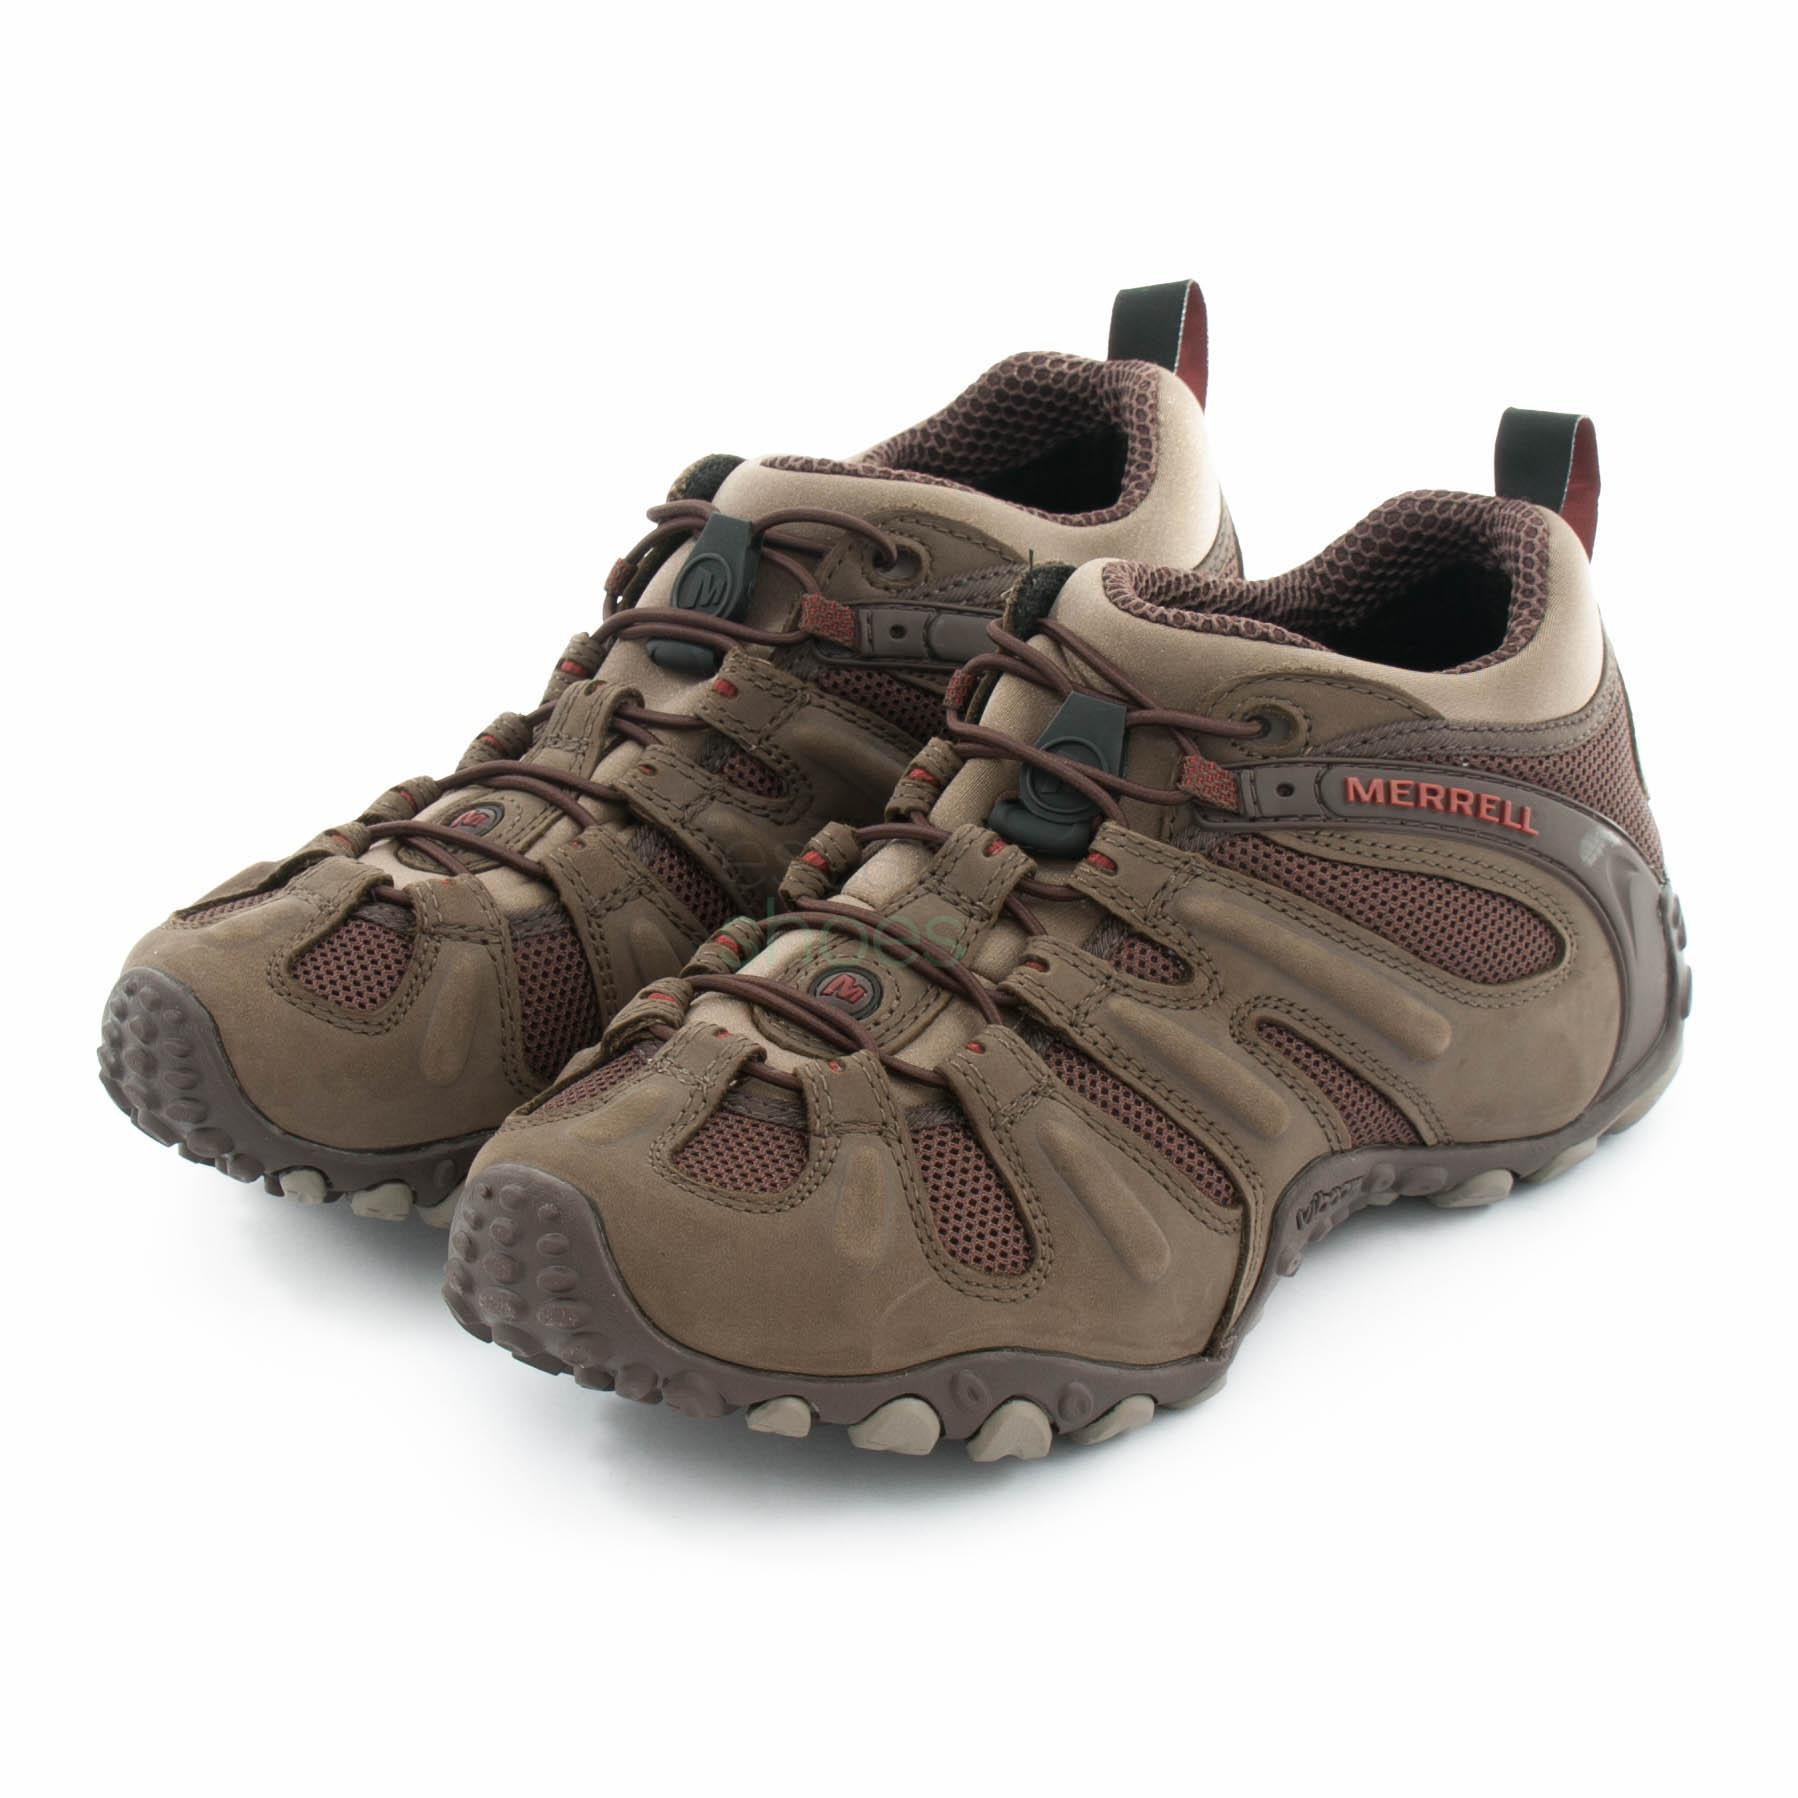 036d4110cb1 Your Sneakers Merrell Chameleon Ii Stretch Cloudy J598325 Here